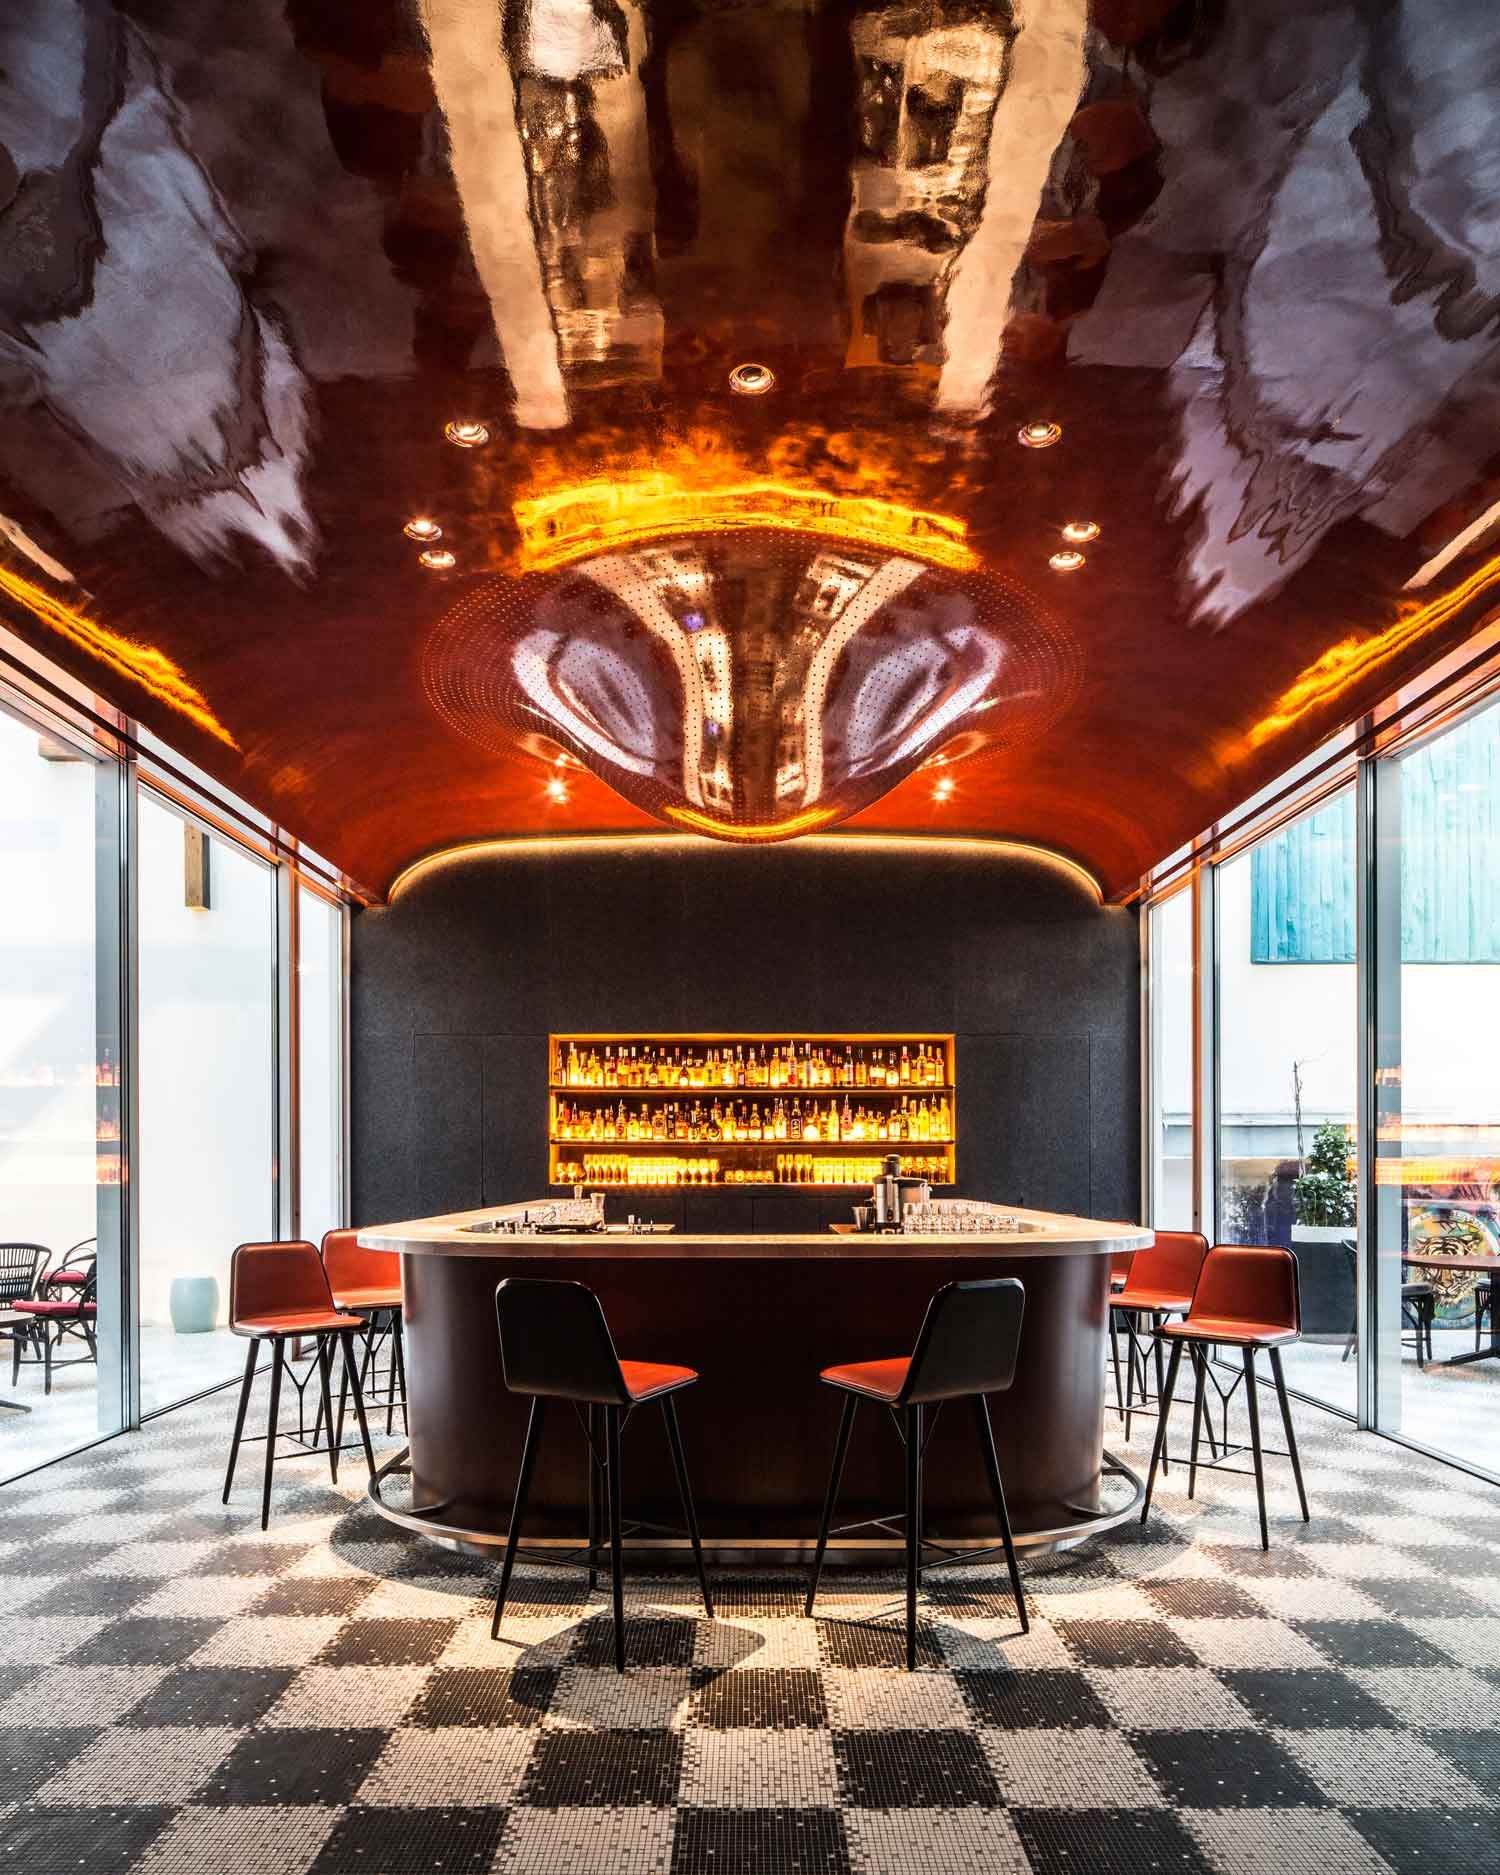 Legendary nightclub les bains paris becomes a luxury hotel for Design hotel paris